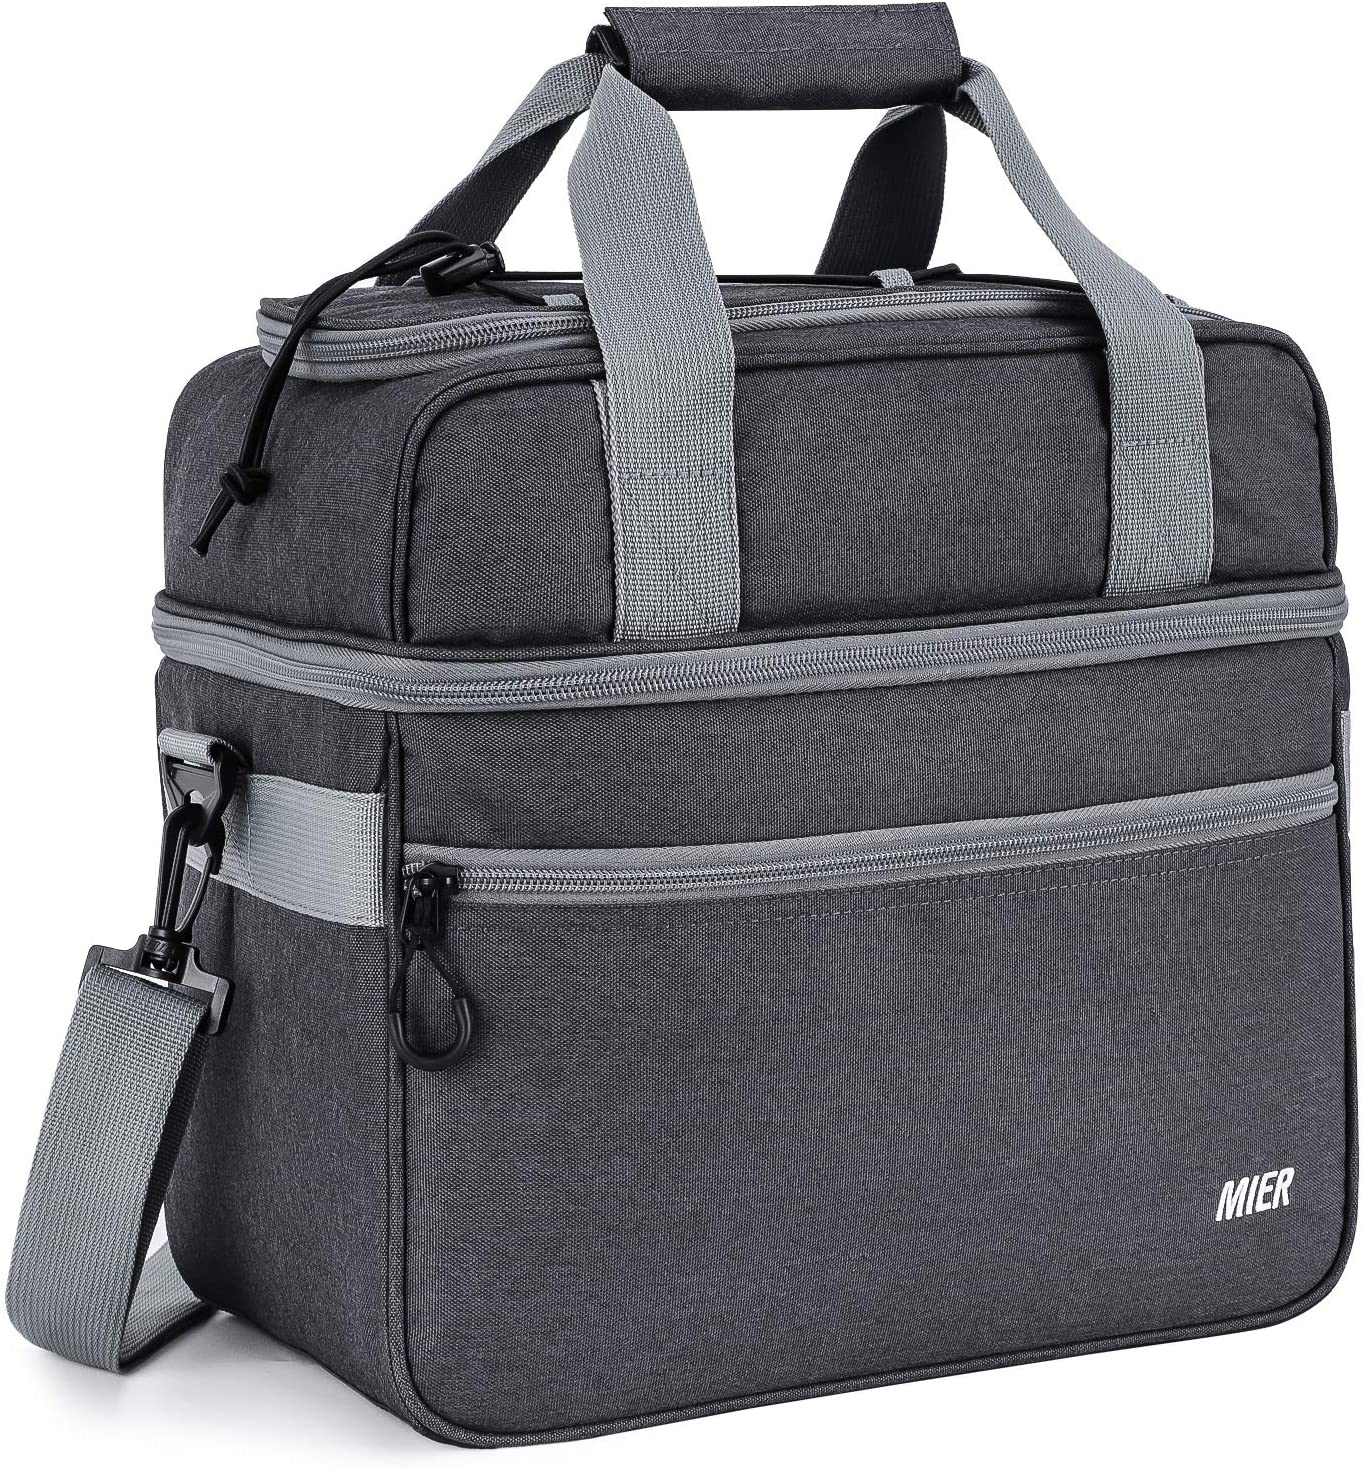 MIER Double Compartment Kayak Cooler Bag